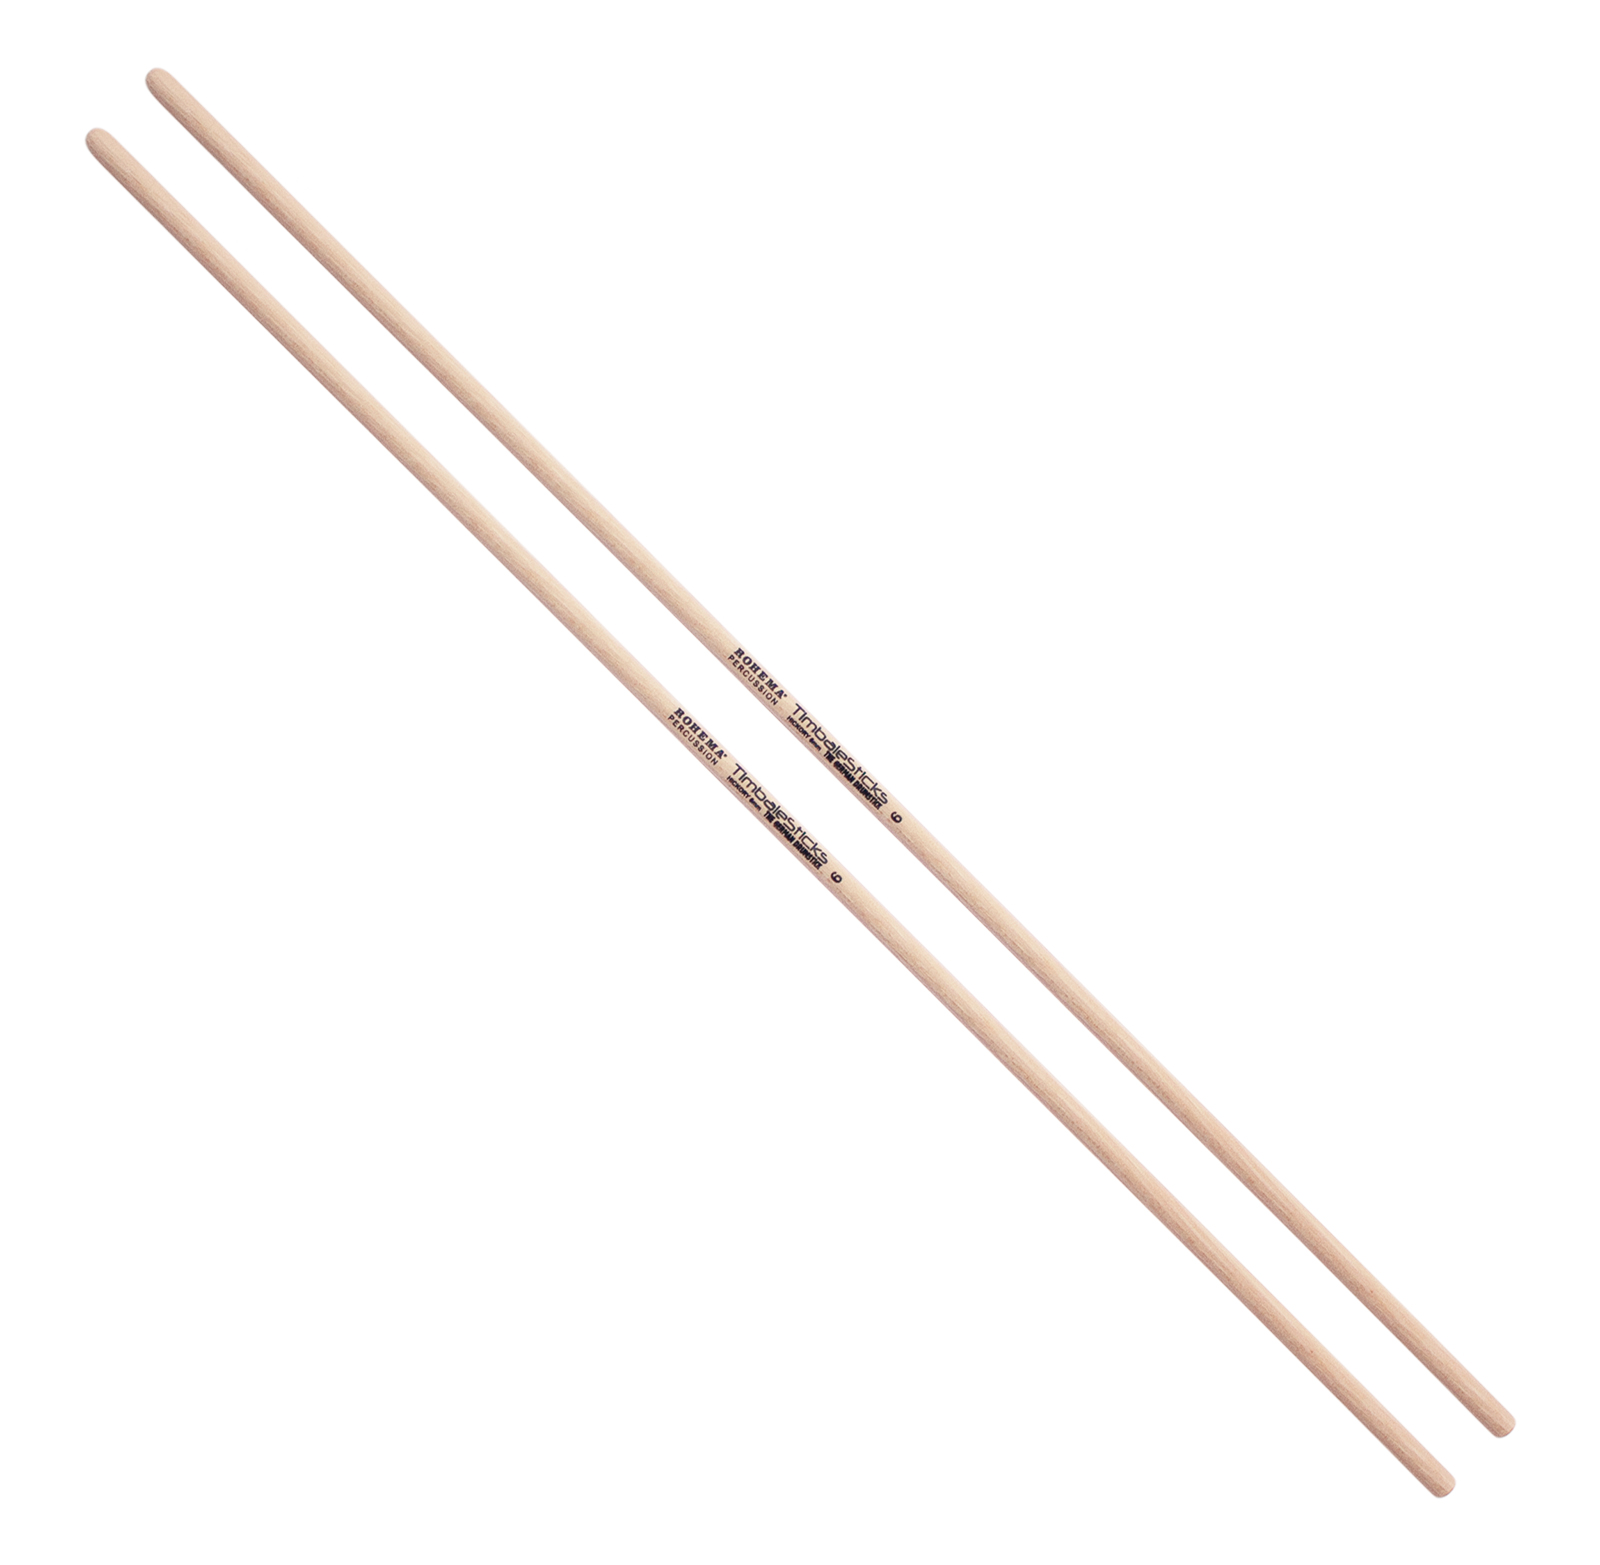 Rohema Baguettes Timbales 6mm Hickory